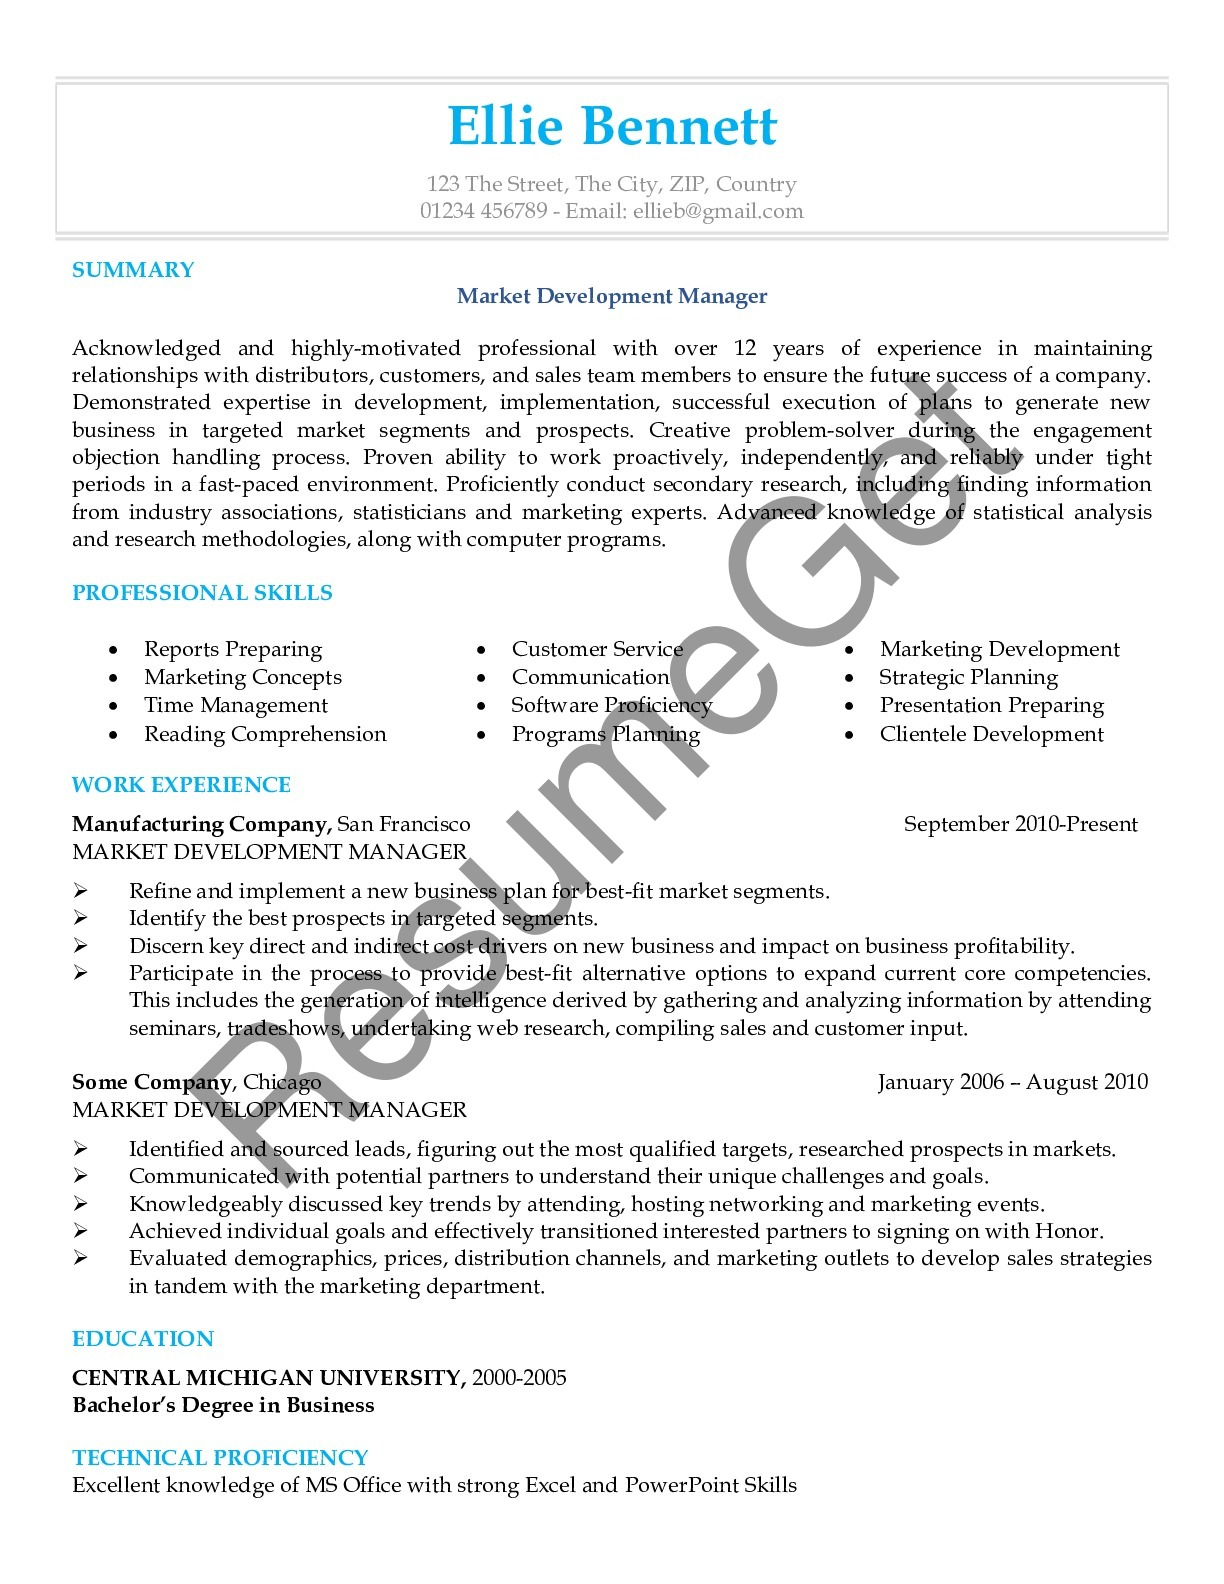 Resume Example for Marketing Professional